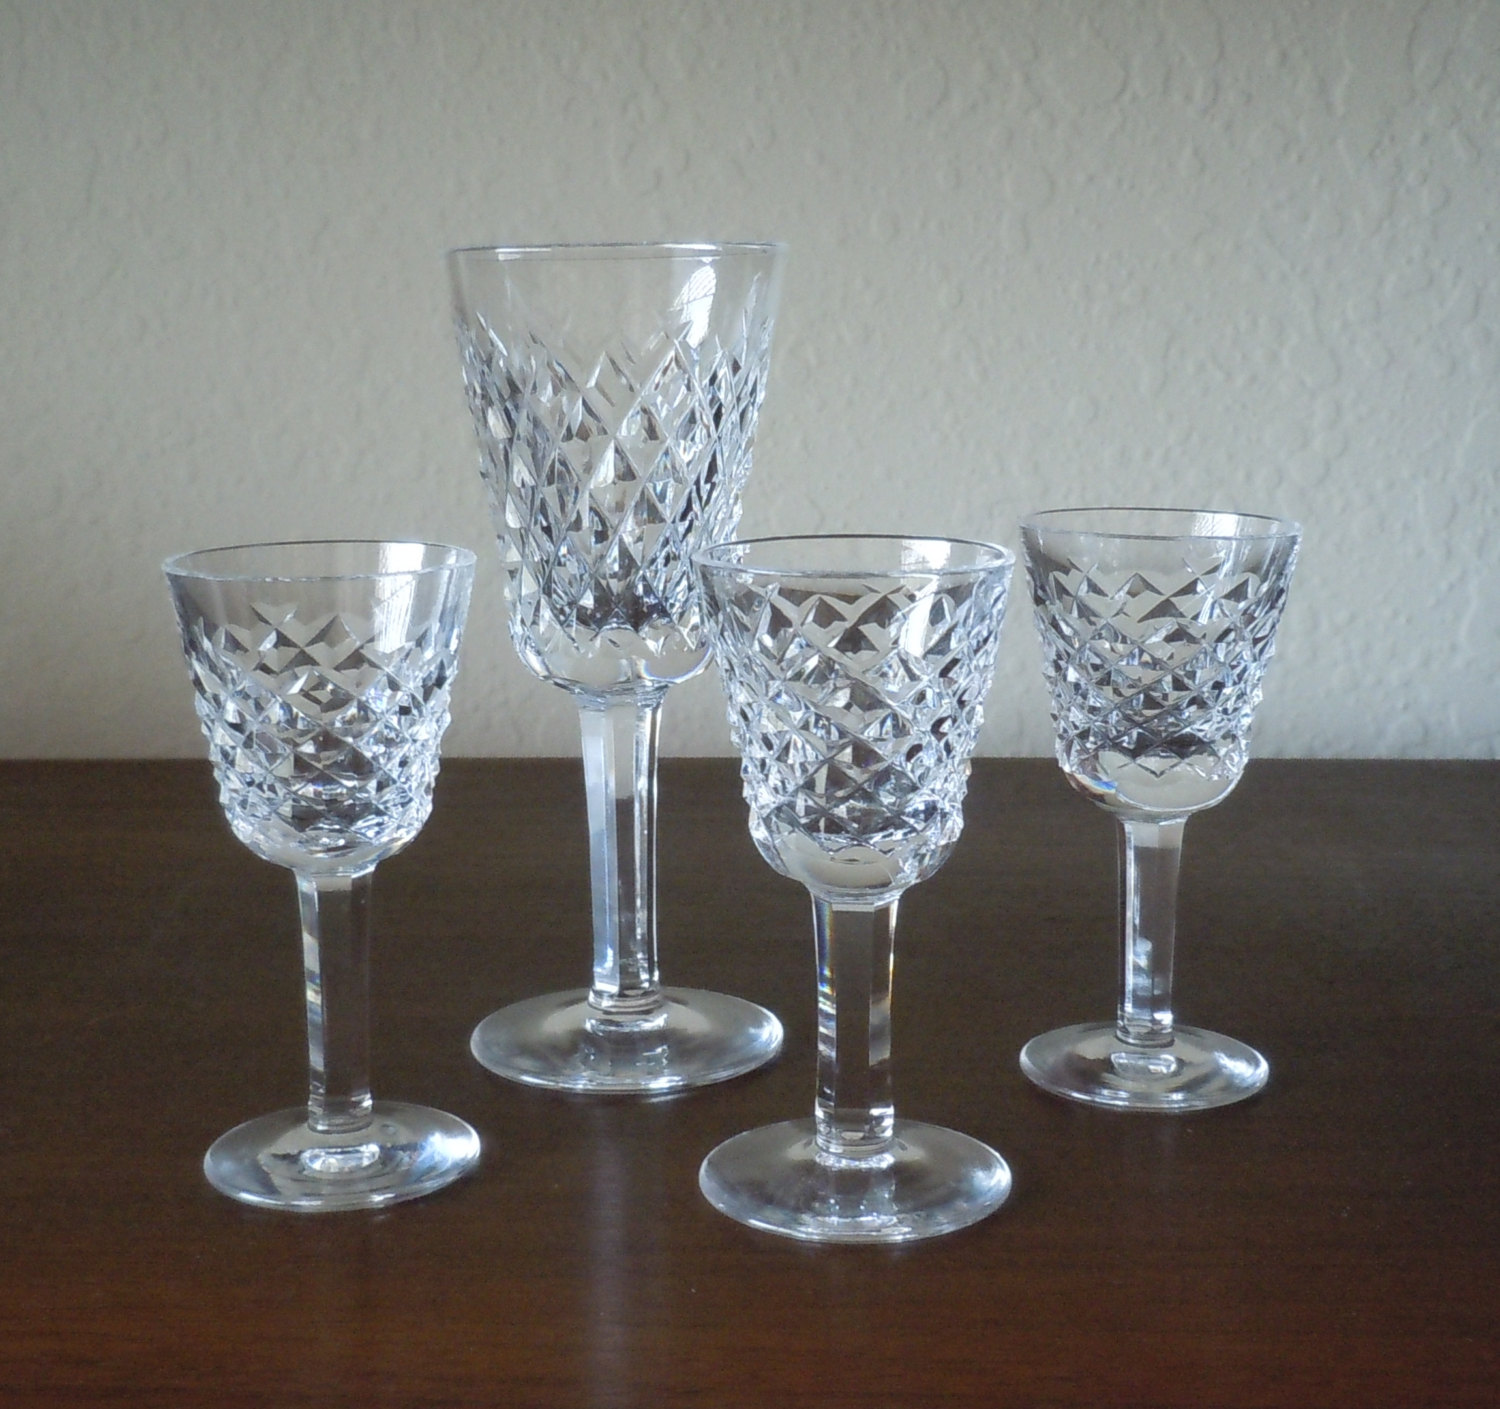 Fantastic Waterford Crystal Patterns for Dining Ware Ideas: Charming Waterford Crystal Patterns For Dining Sets Ideas With Waterford Crystal Glass Patterns